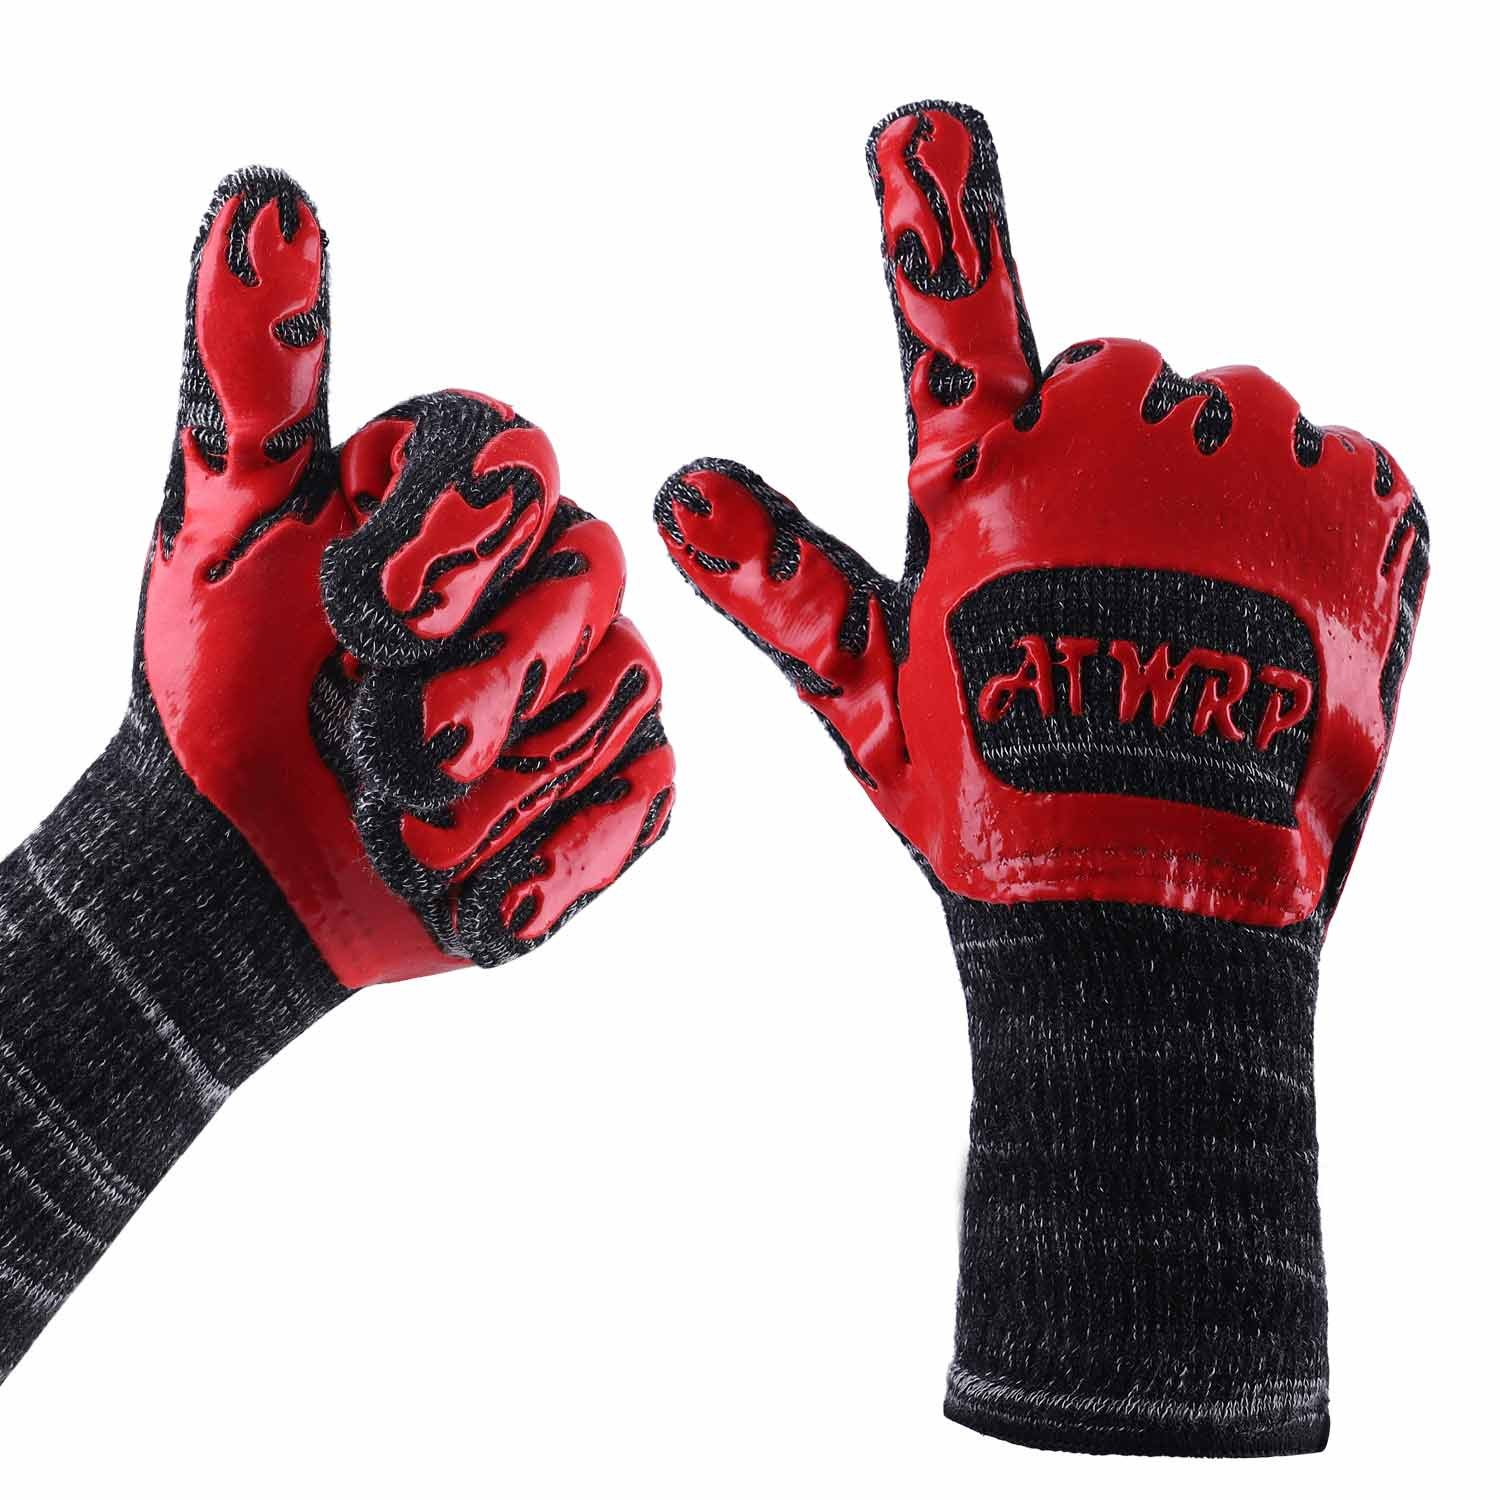 ATWRP FIREPROOF 932°F Extreme Heat Resistant BBQ Gloves by for Cooking Grilling Barbecue Charcoal Grill Smoker Tools Hot Ovens with Fingers Double Layered by ATWRP (Image #2)